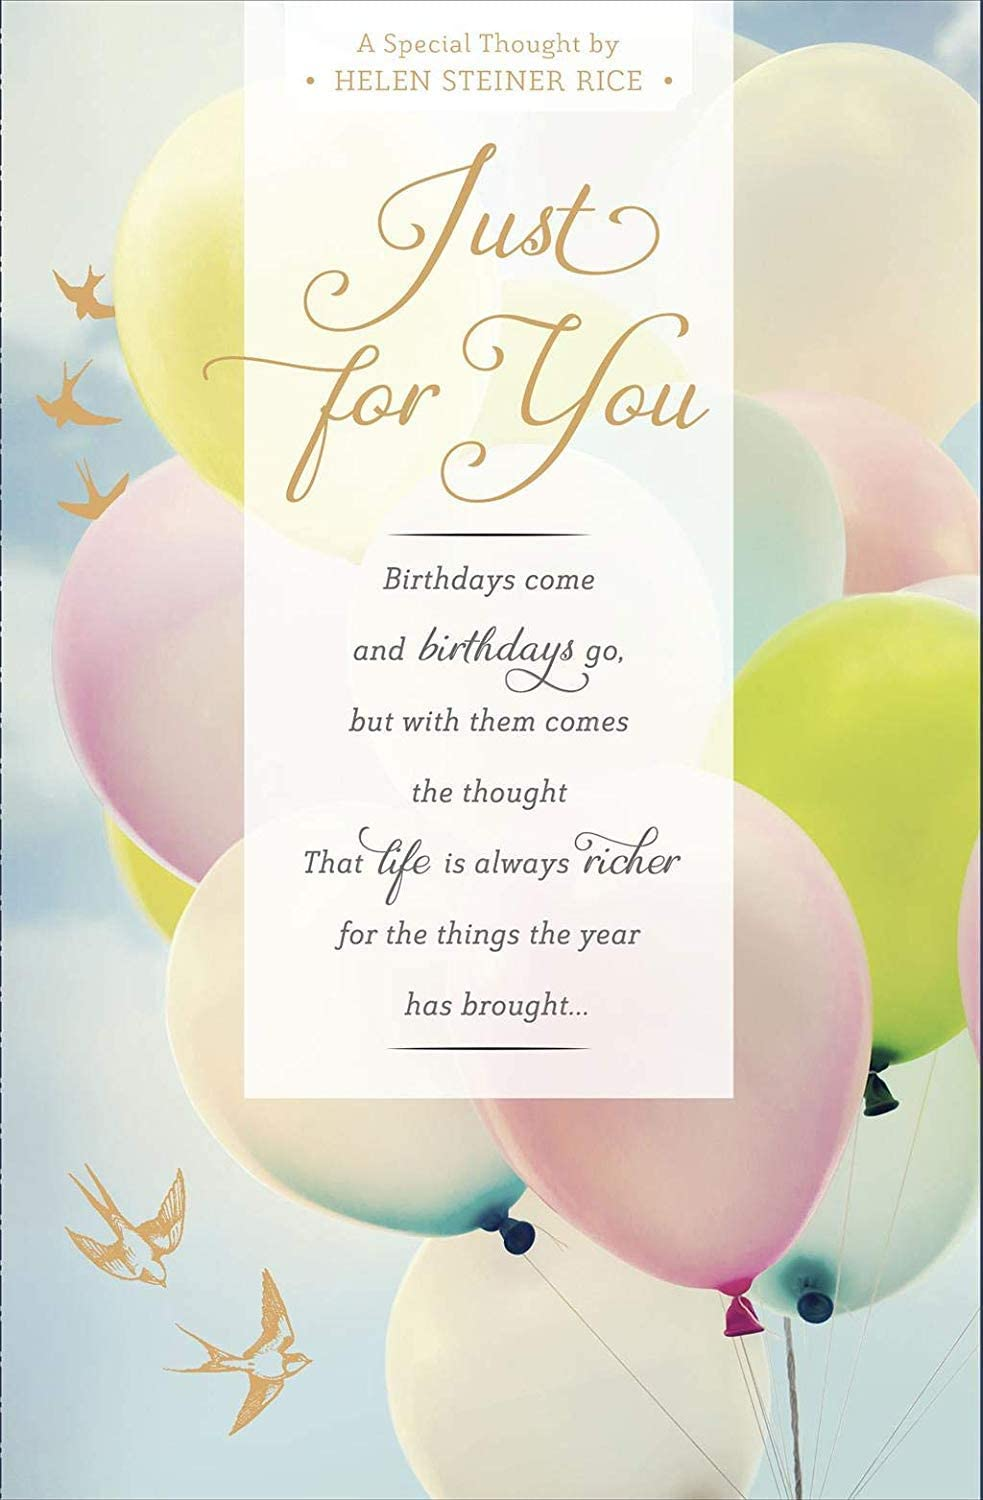 for Someone Very Special Birthday Card Helen Steiner Rice